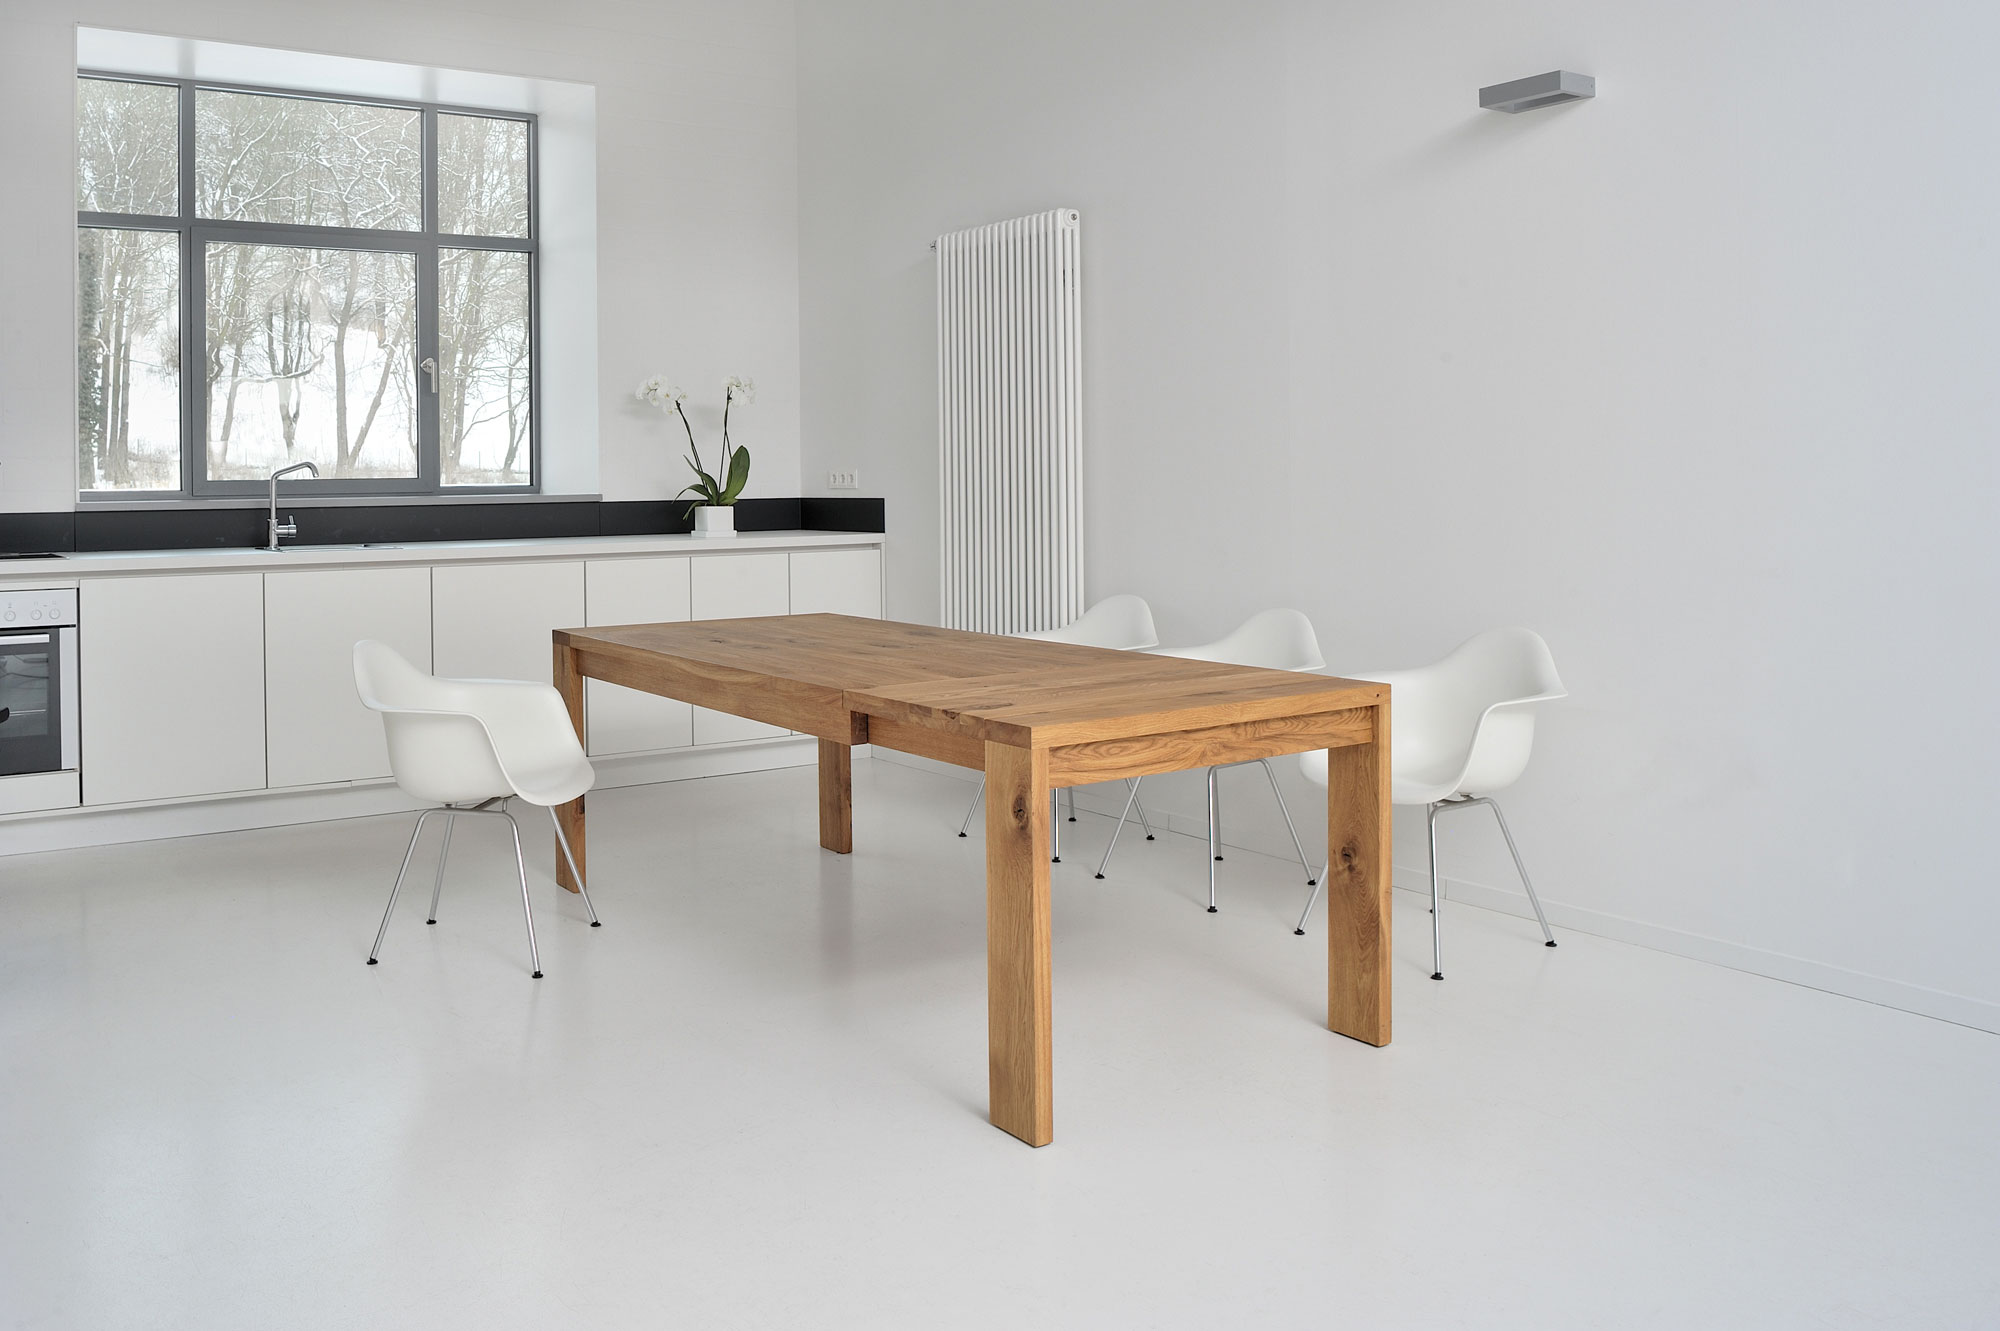 Extendable Table LUNGO 2763 custom made in solid wood by vitamin design